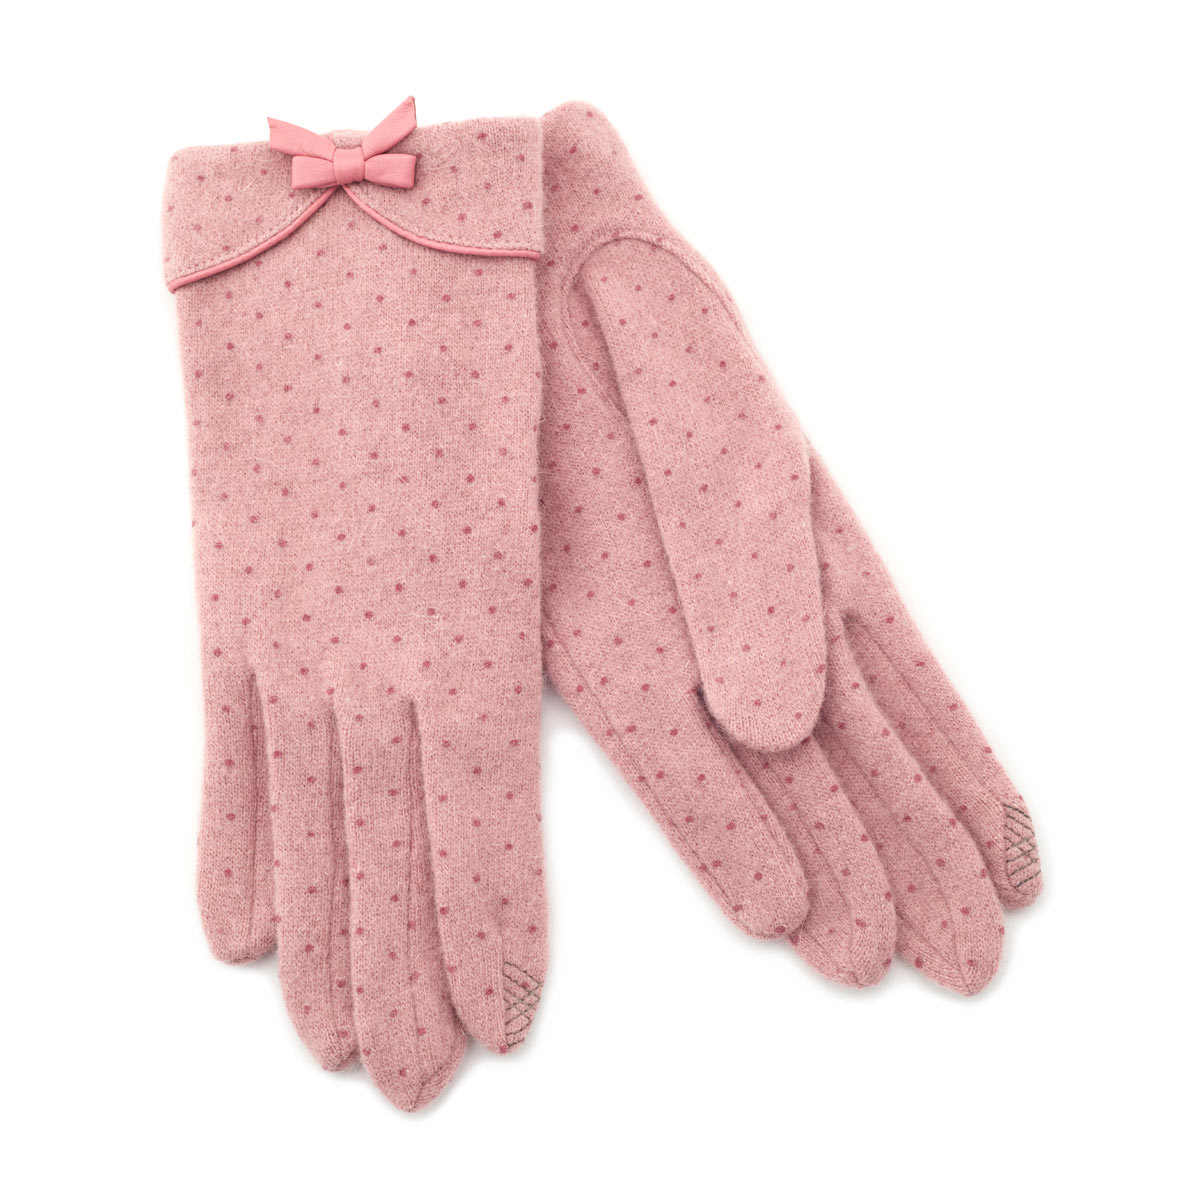 Blush Pink Polka Dot Wool Gloves